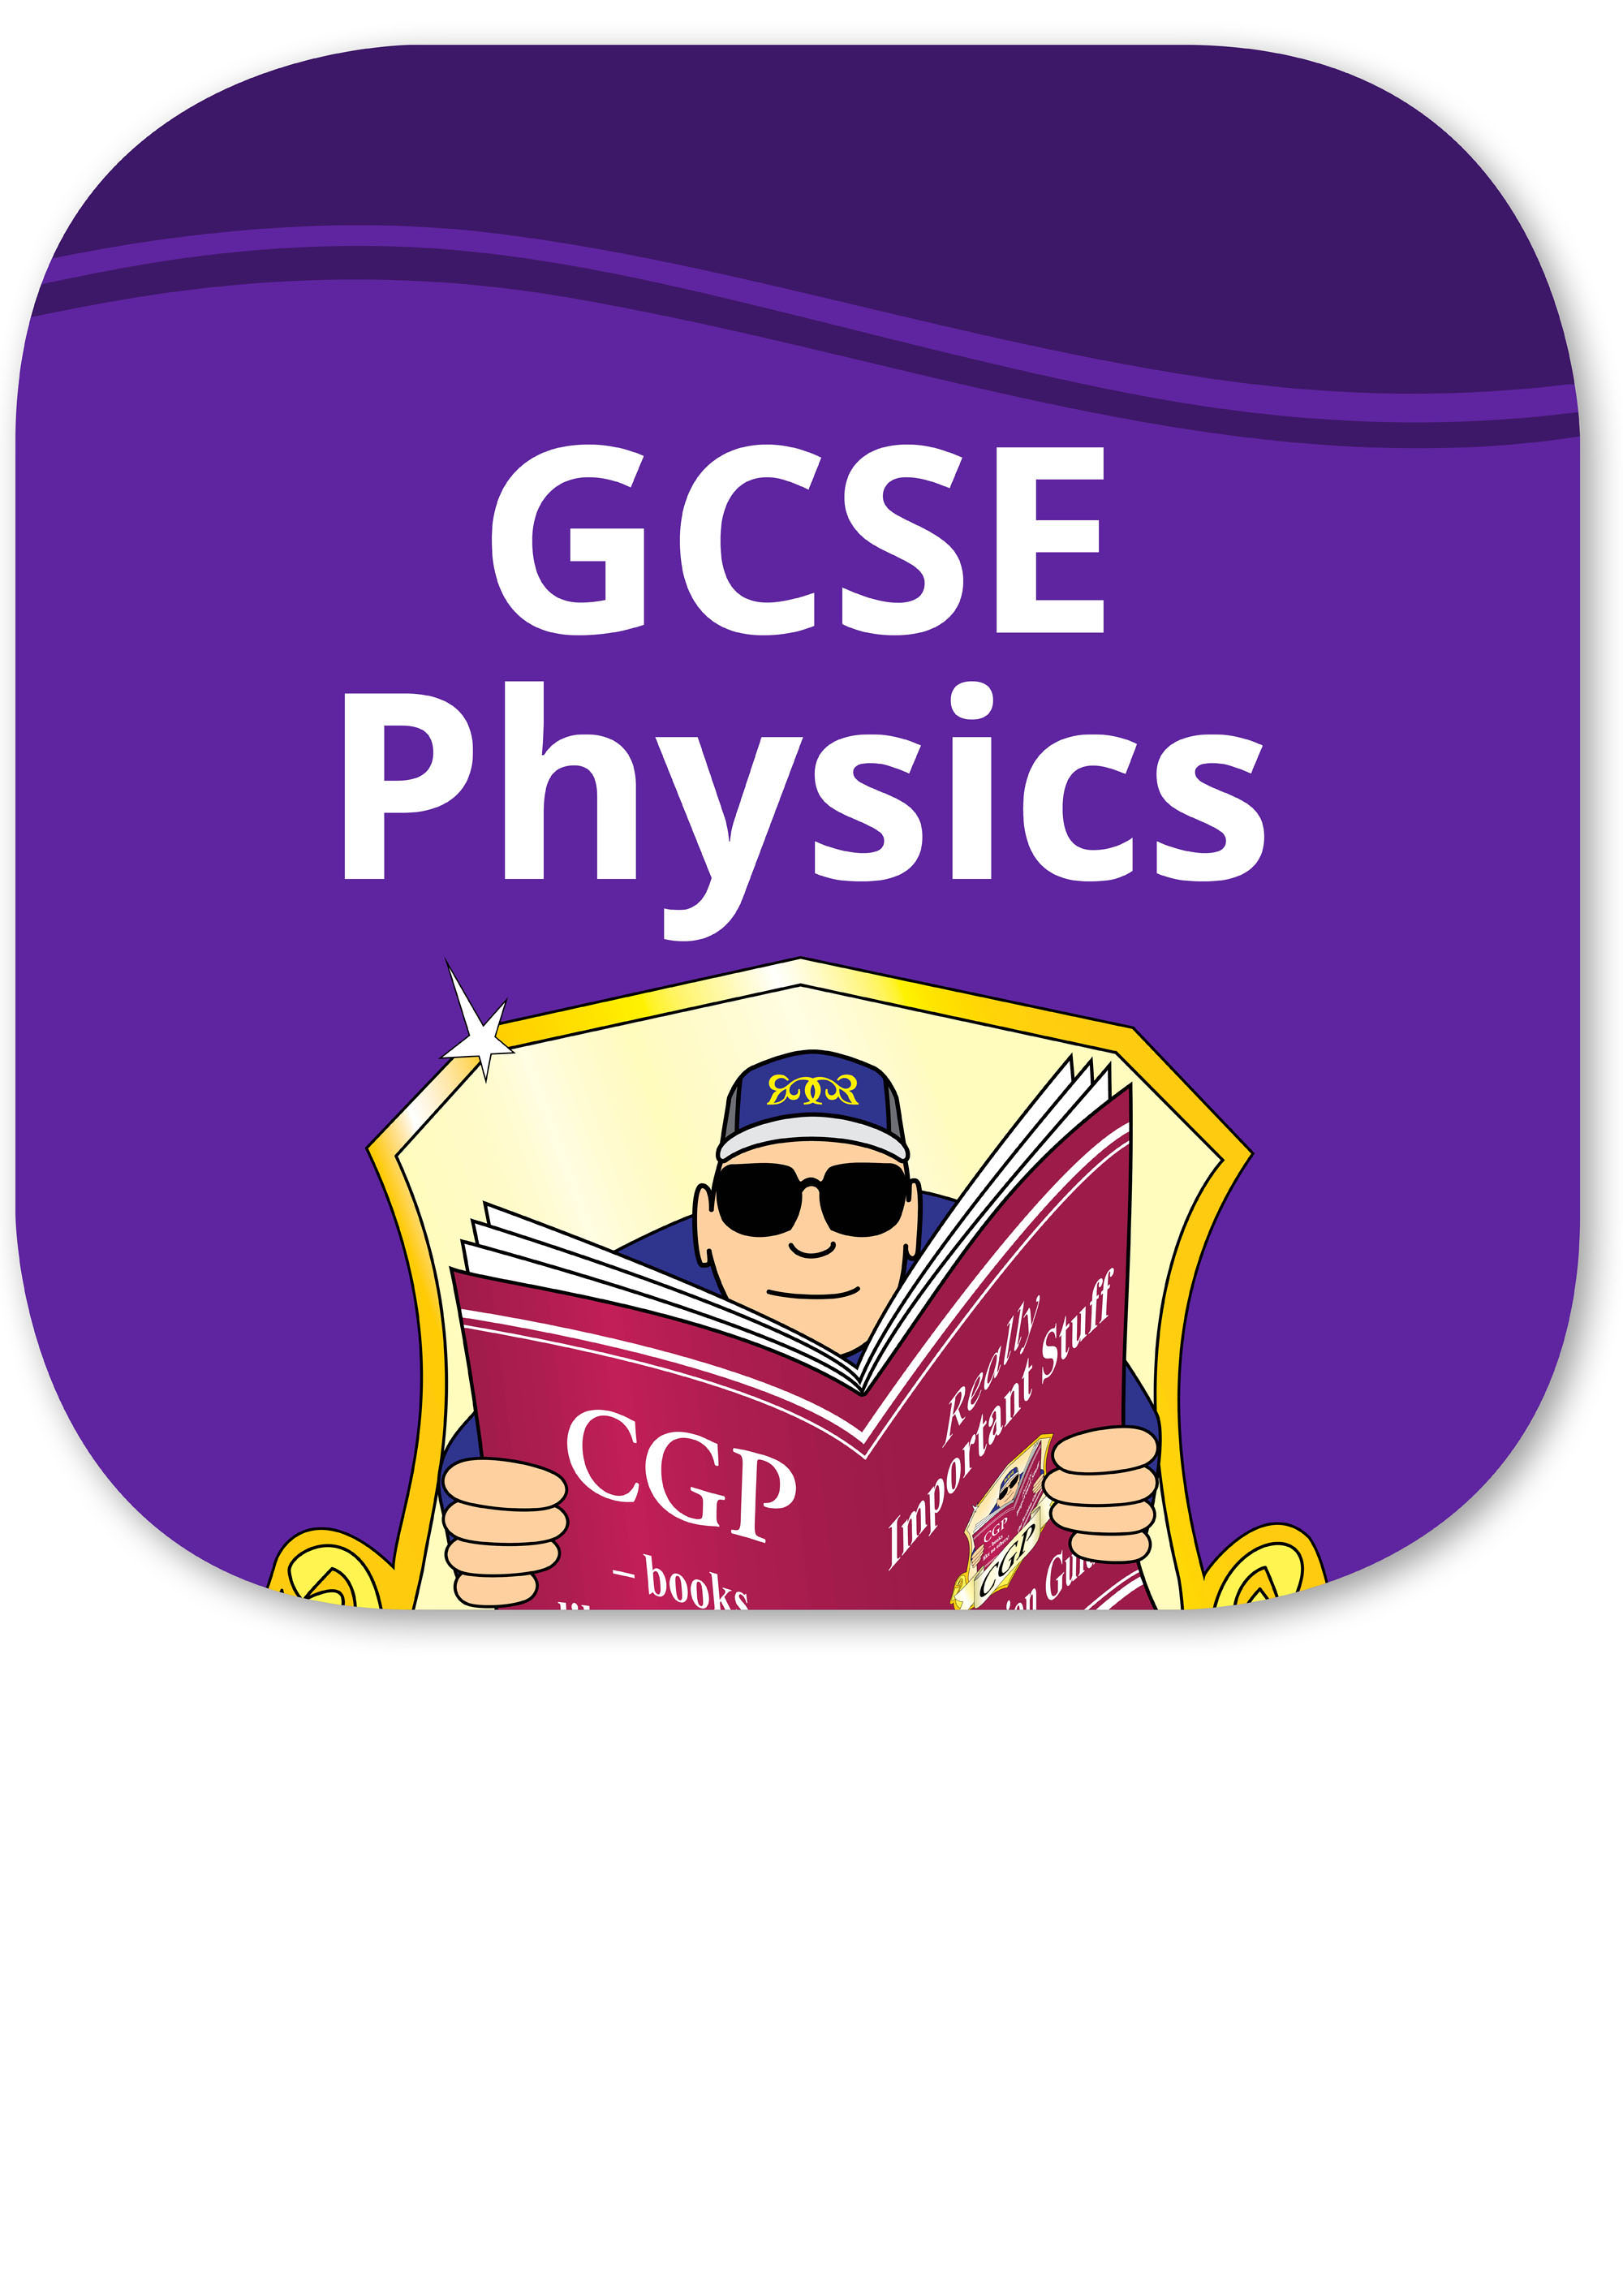 PAGT41 - New App: GCSE Physics AQA Revision - for Android